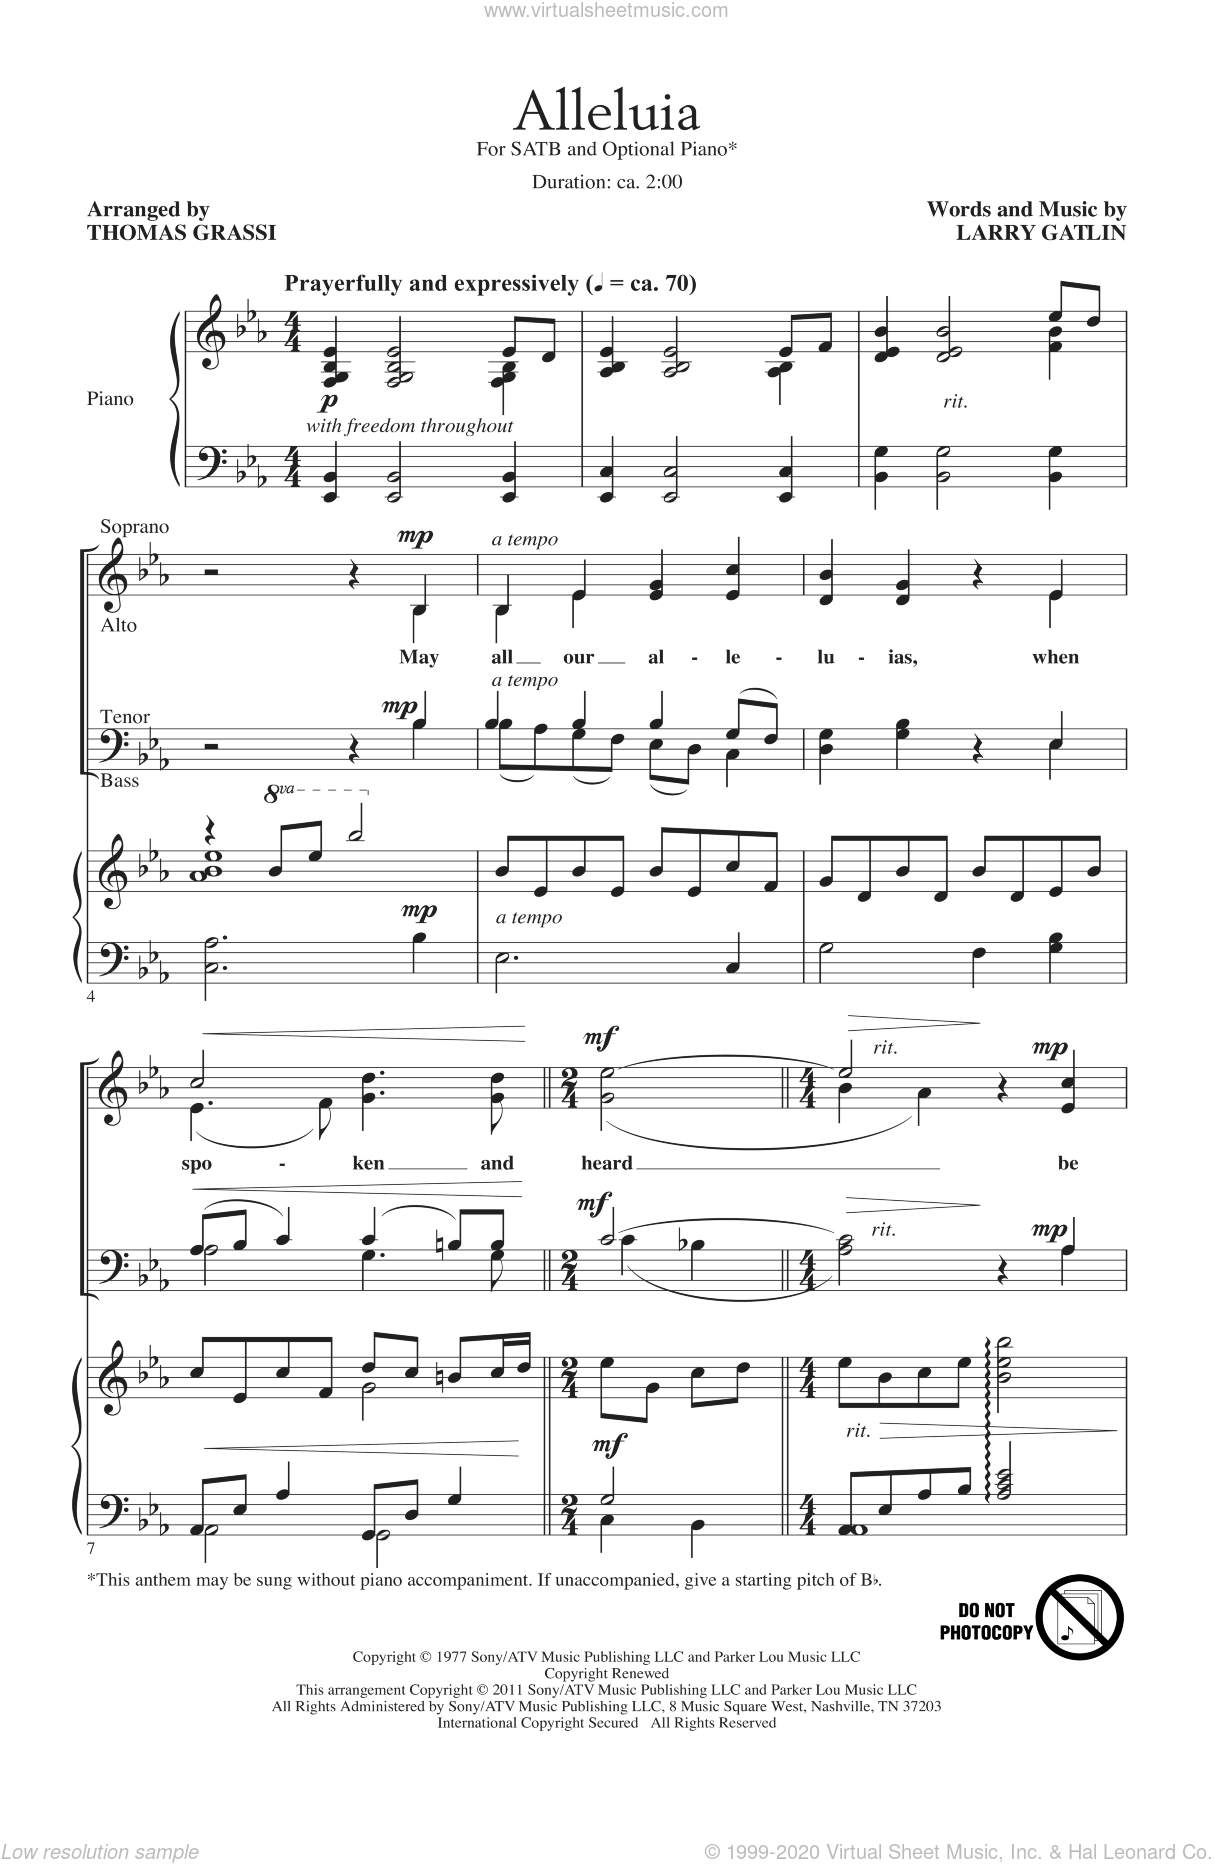 Alleluia sheet music for choir and piano (SATB) by Larry Gatlin